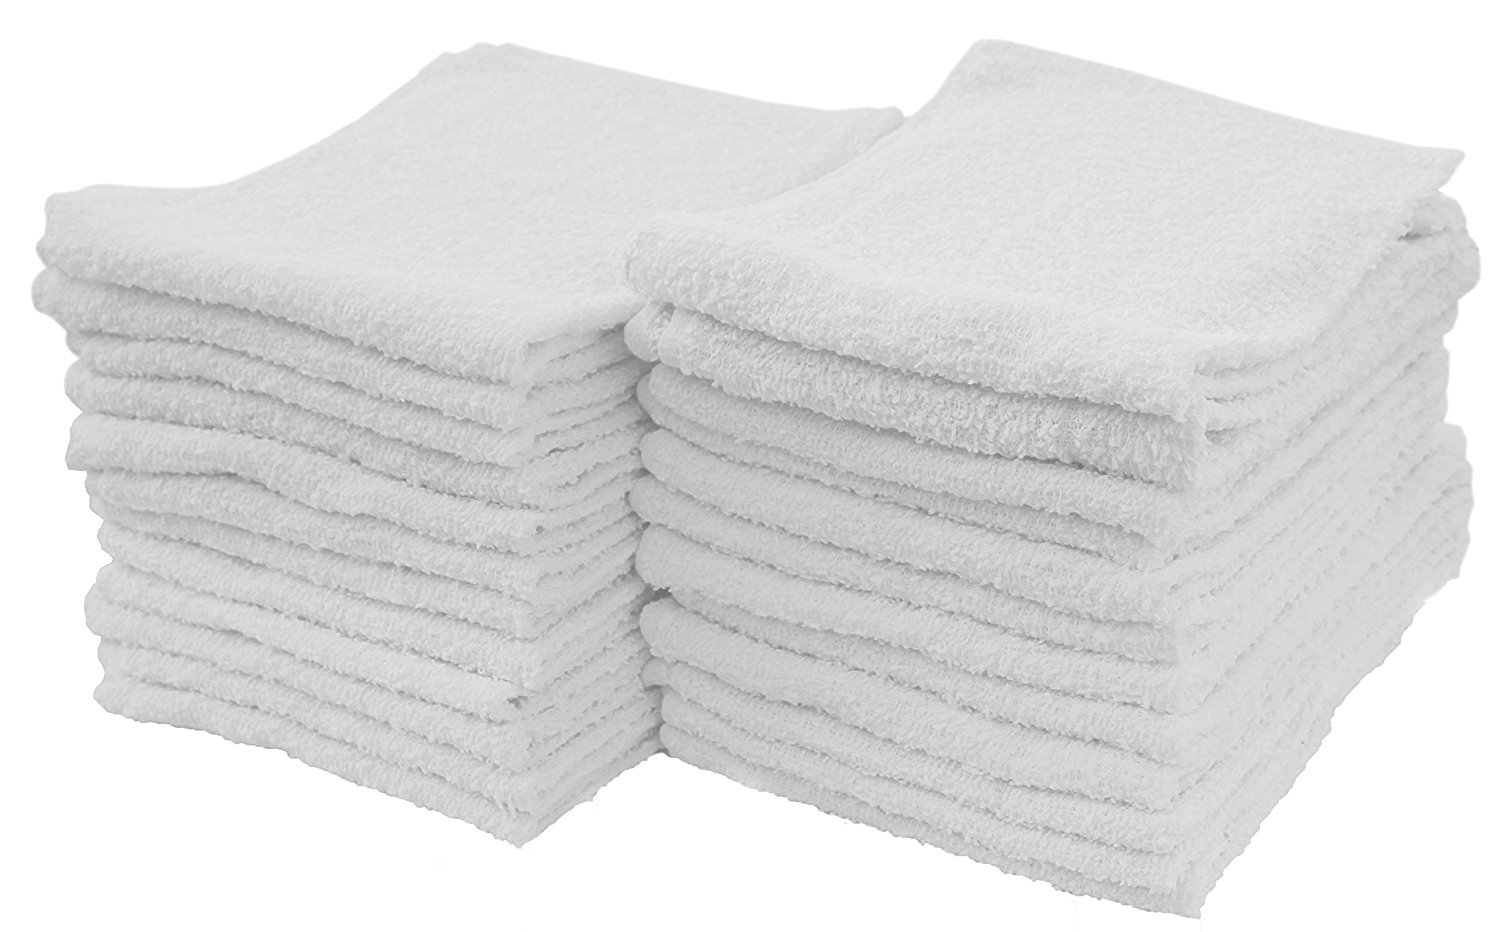 S & T 593901 White 24 Pack Cotton Terry Cleaning Towels 24 Pack